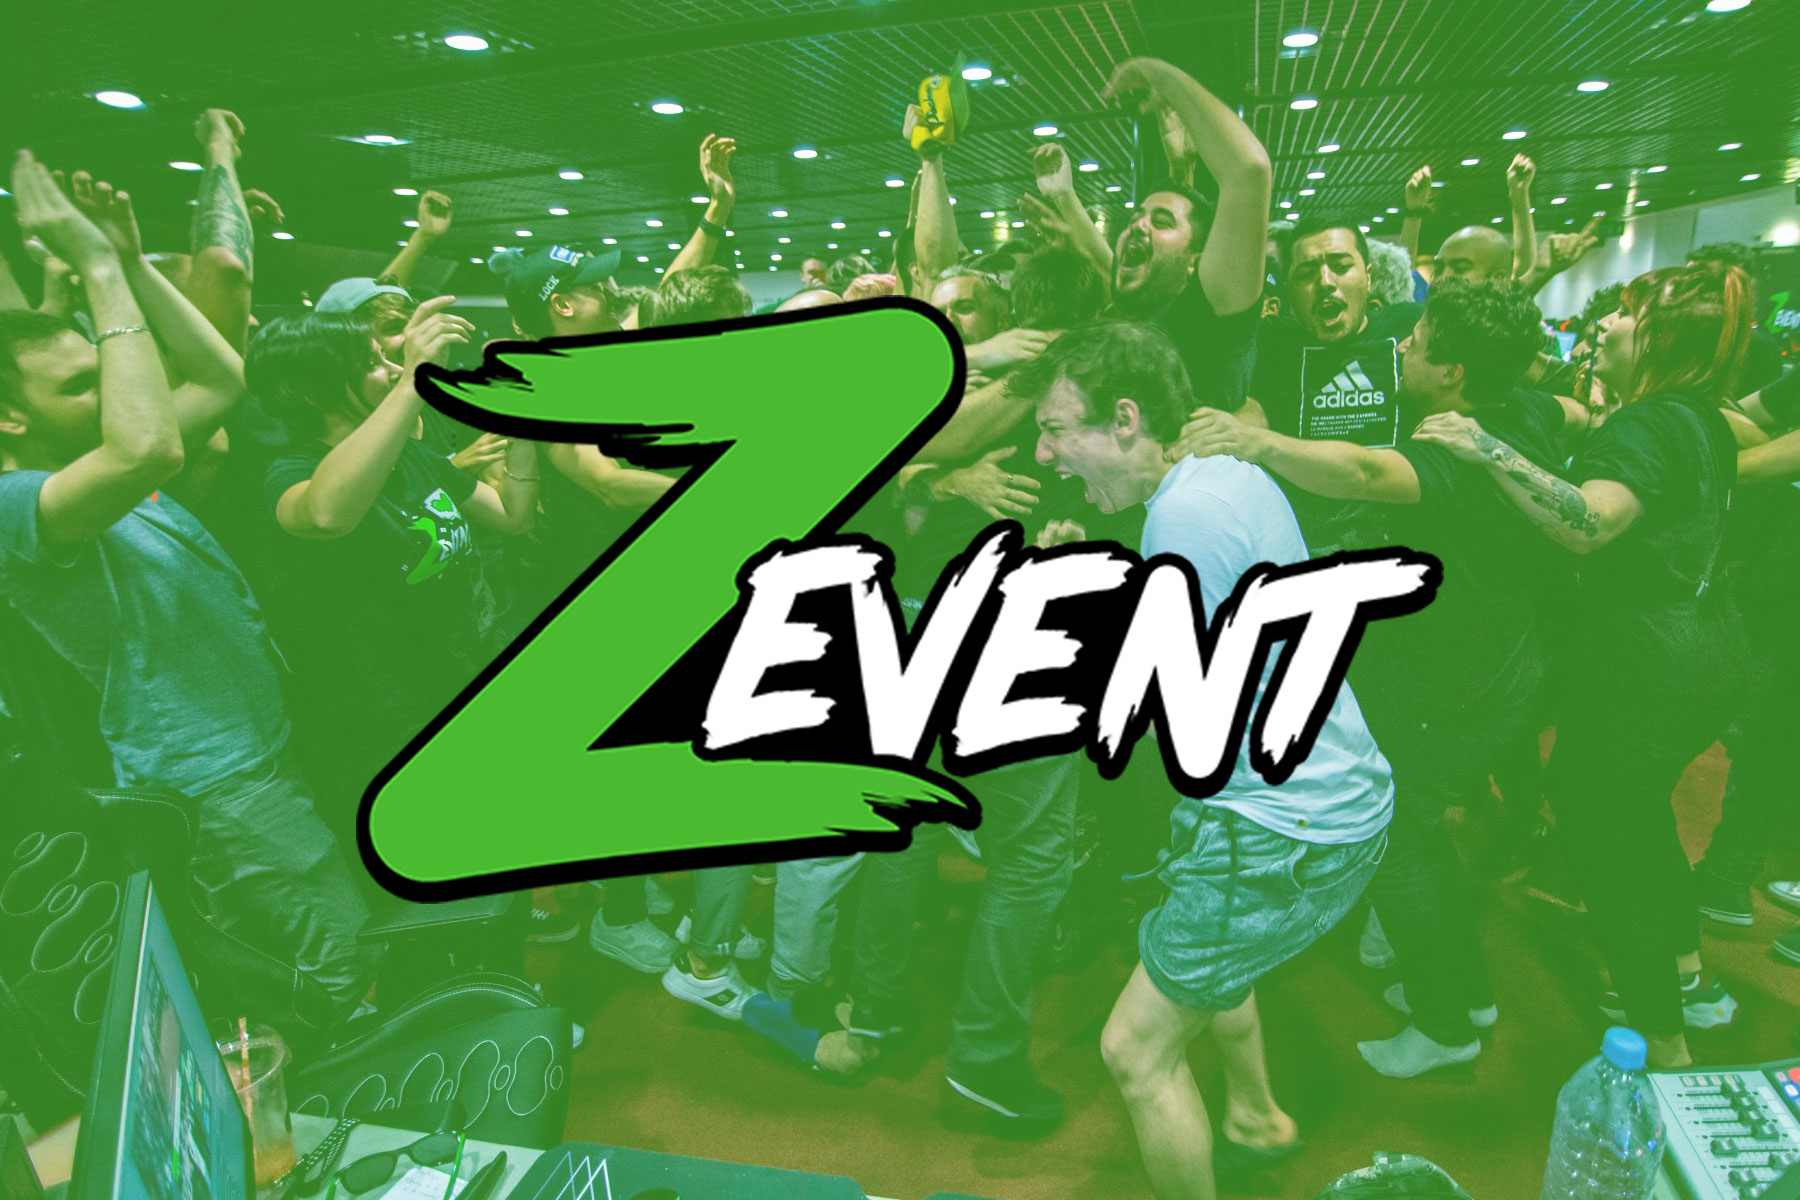 Note #18 : Zevent 2019